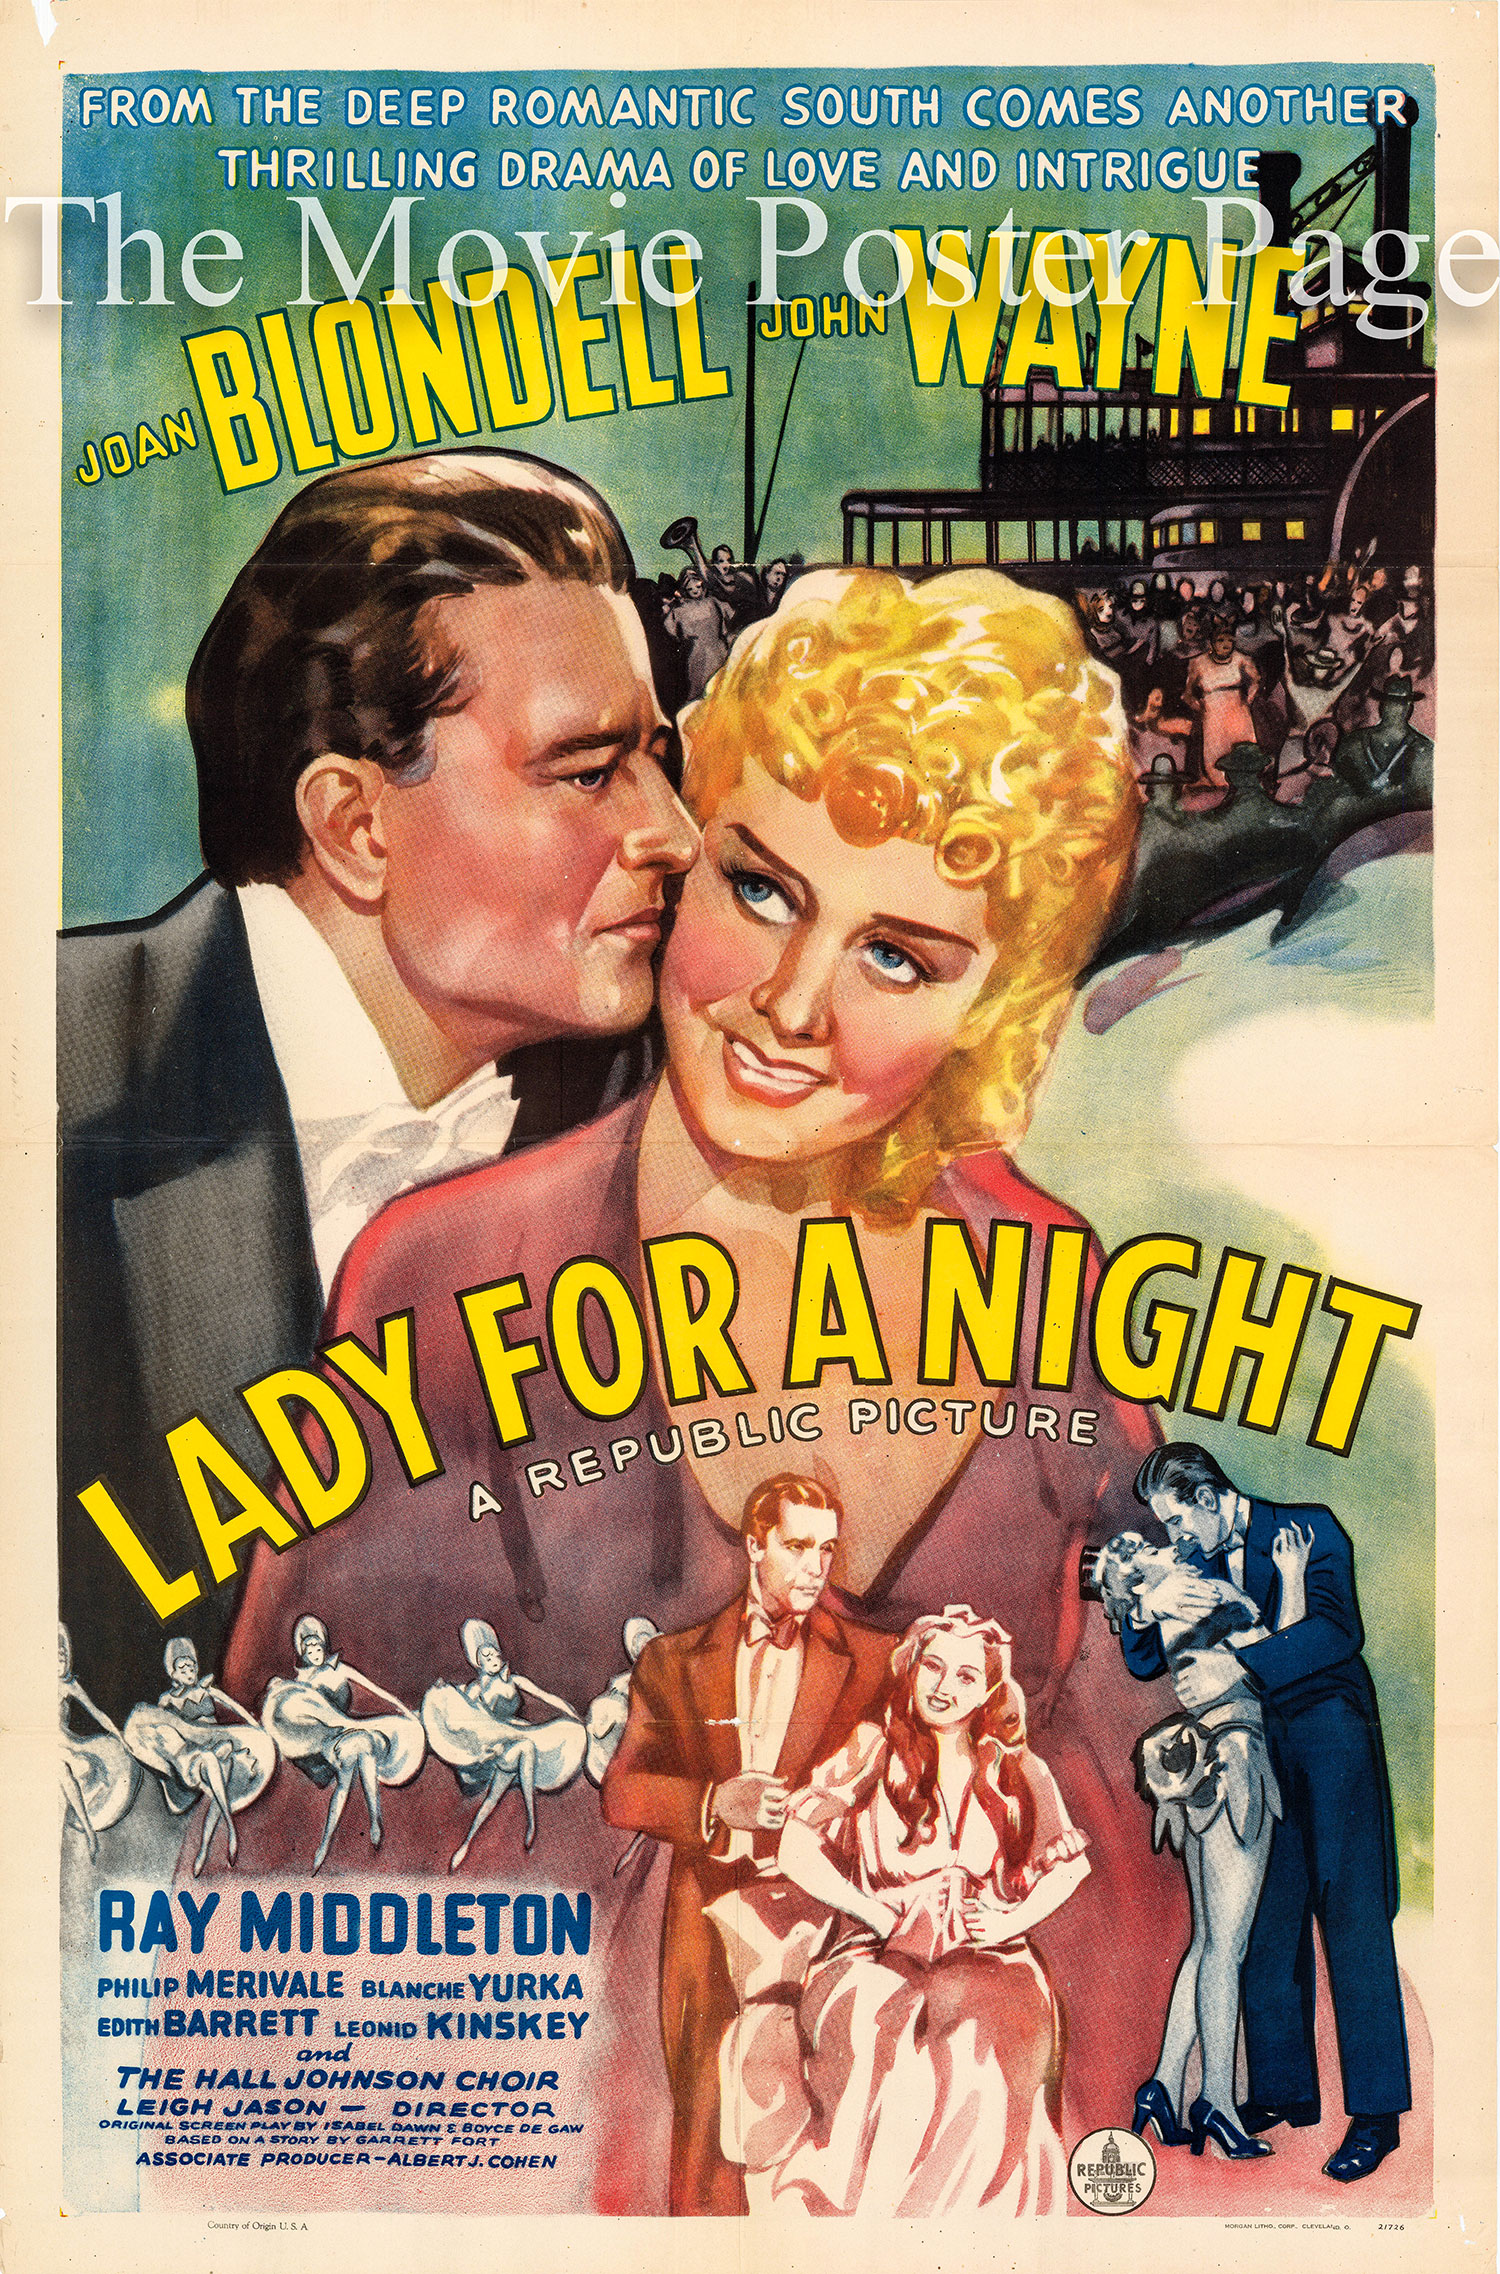 Pictured is a US one-sheet promotional poster for the 1942 Leigh Jason film Lady for a Night starring John Wayne and Joan Blondell.